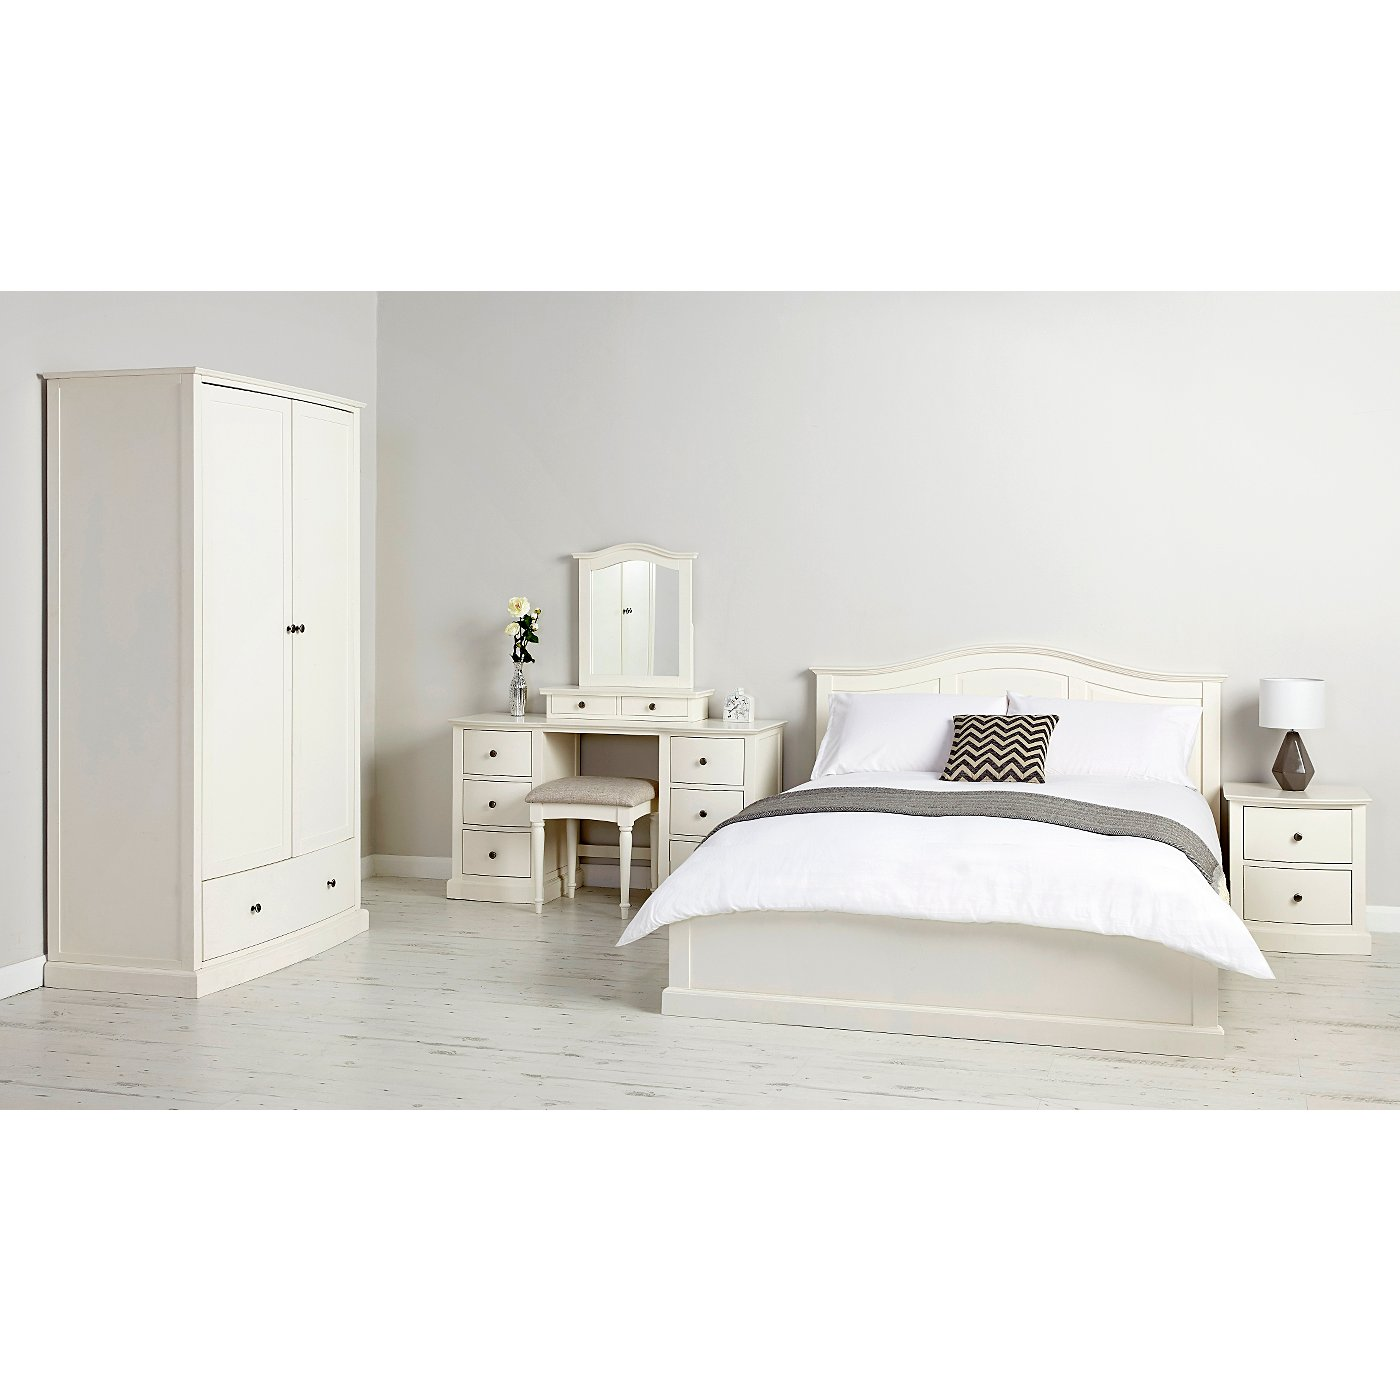 Bedroom furniture asda digitalstudioswebcom for Bedroom furniture sets george